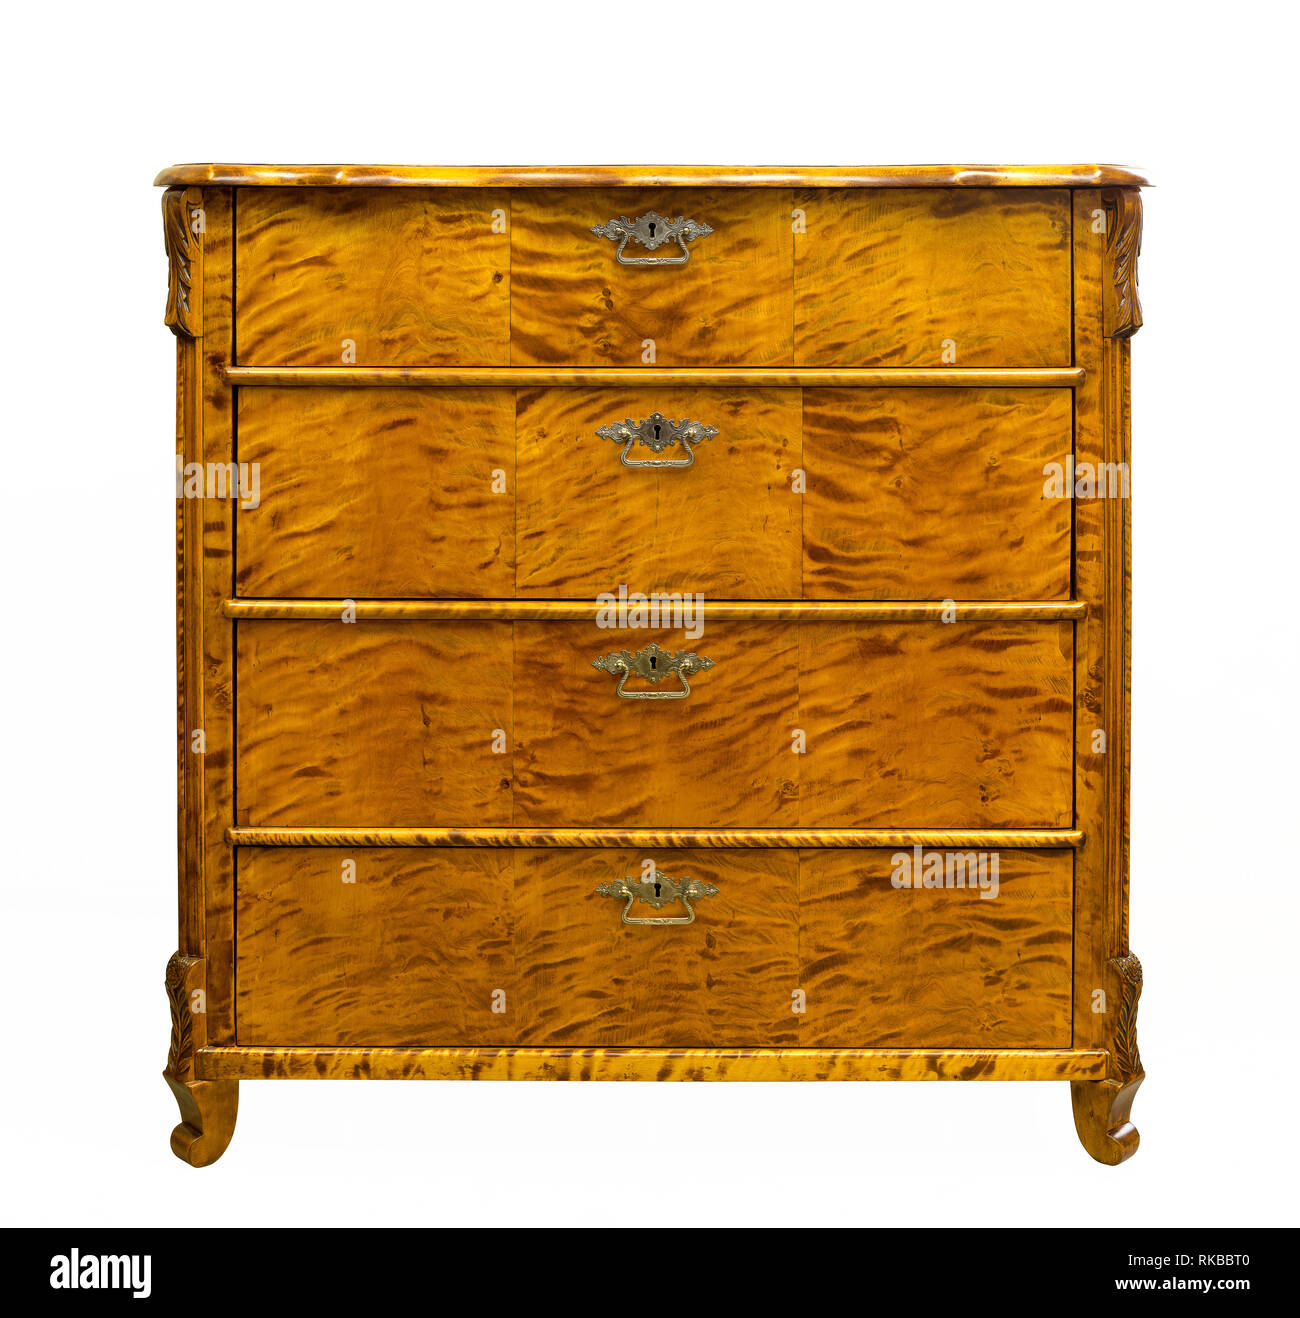 Old vintage antique chest of drawers on a white background - Stock Image